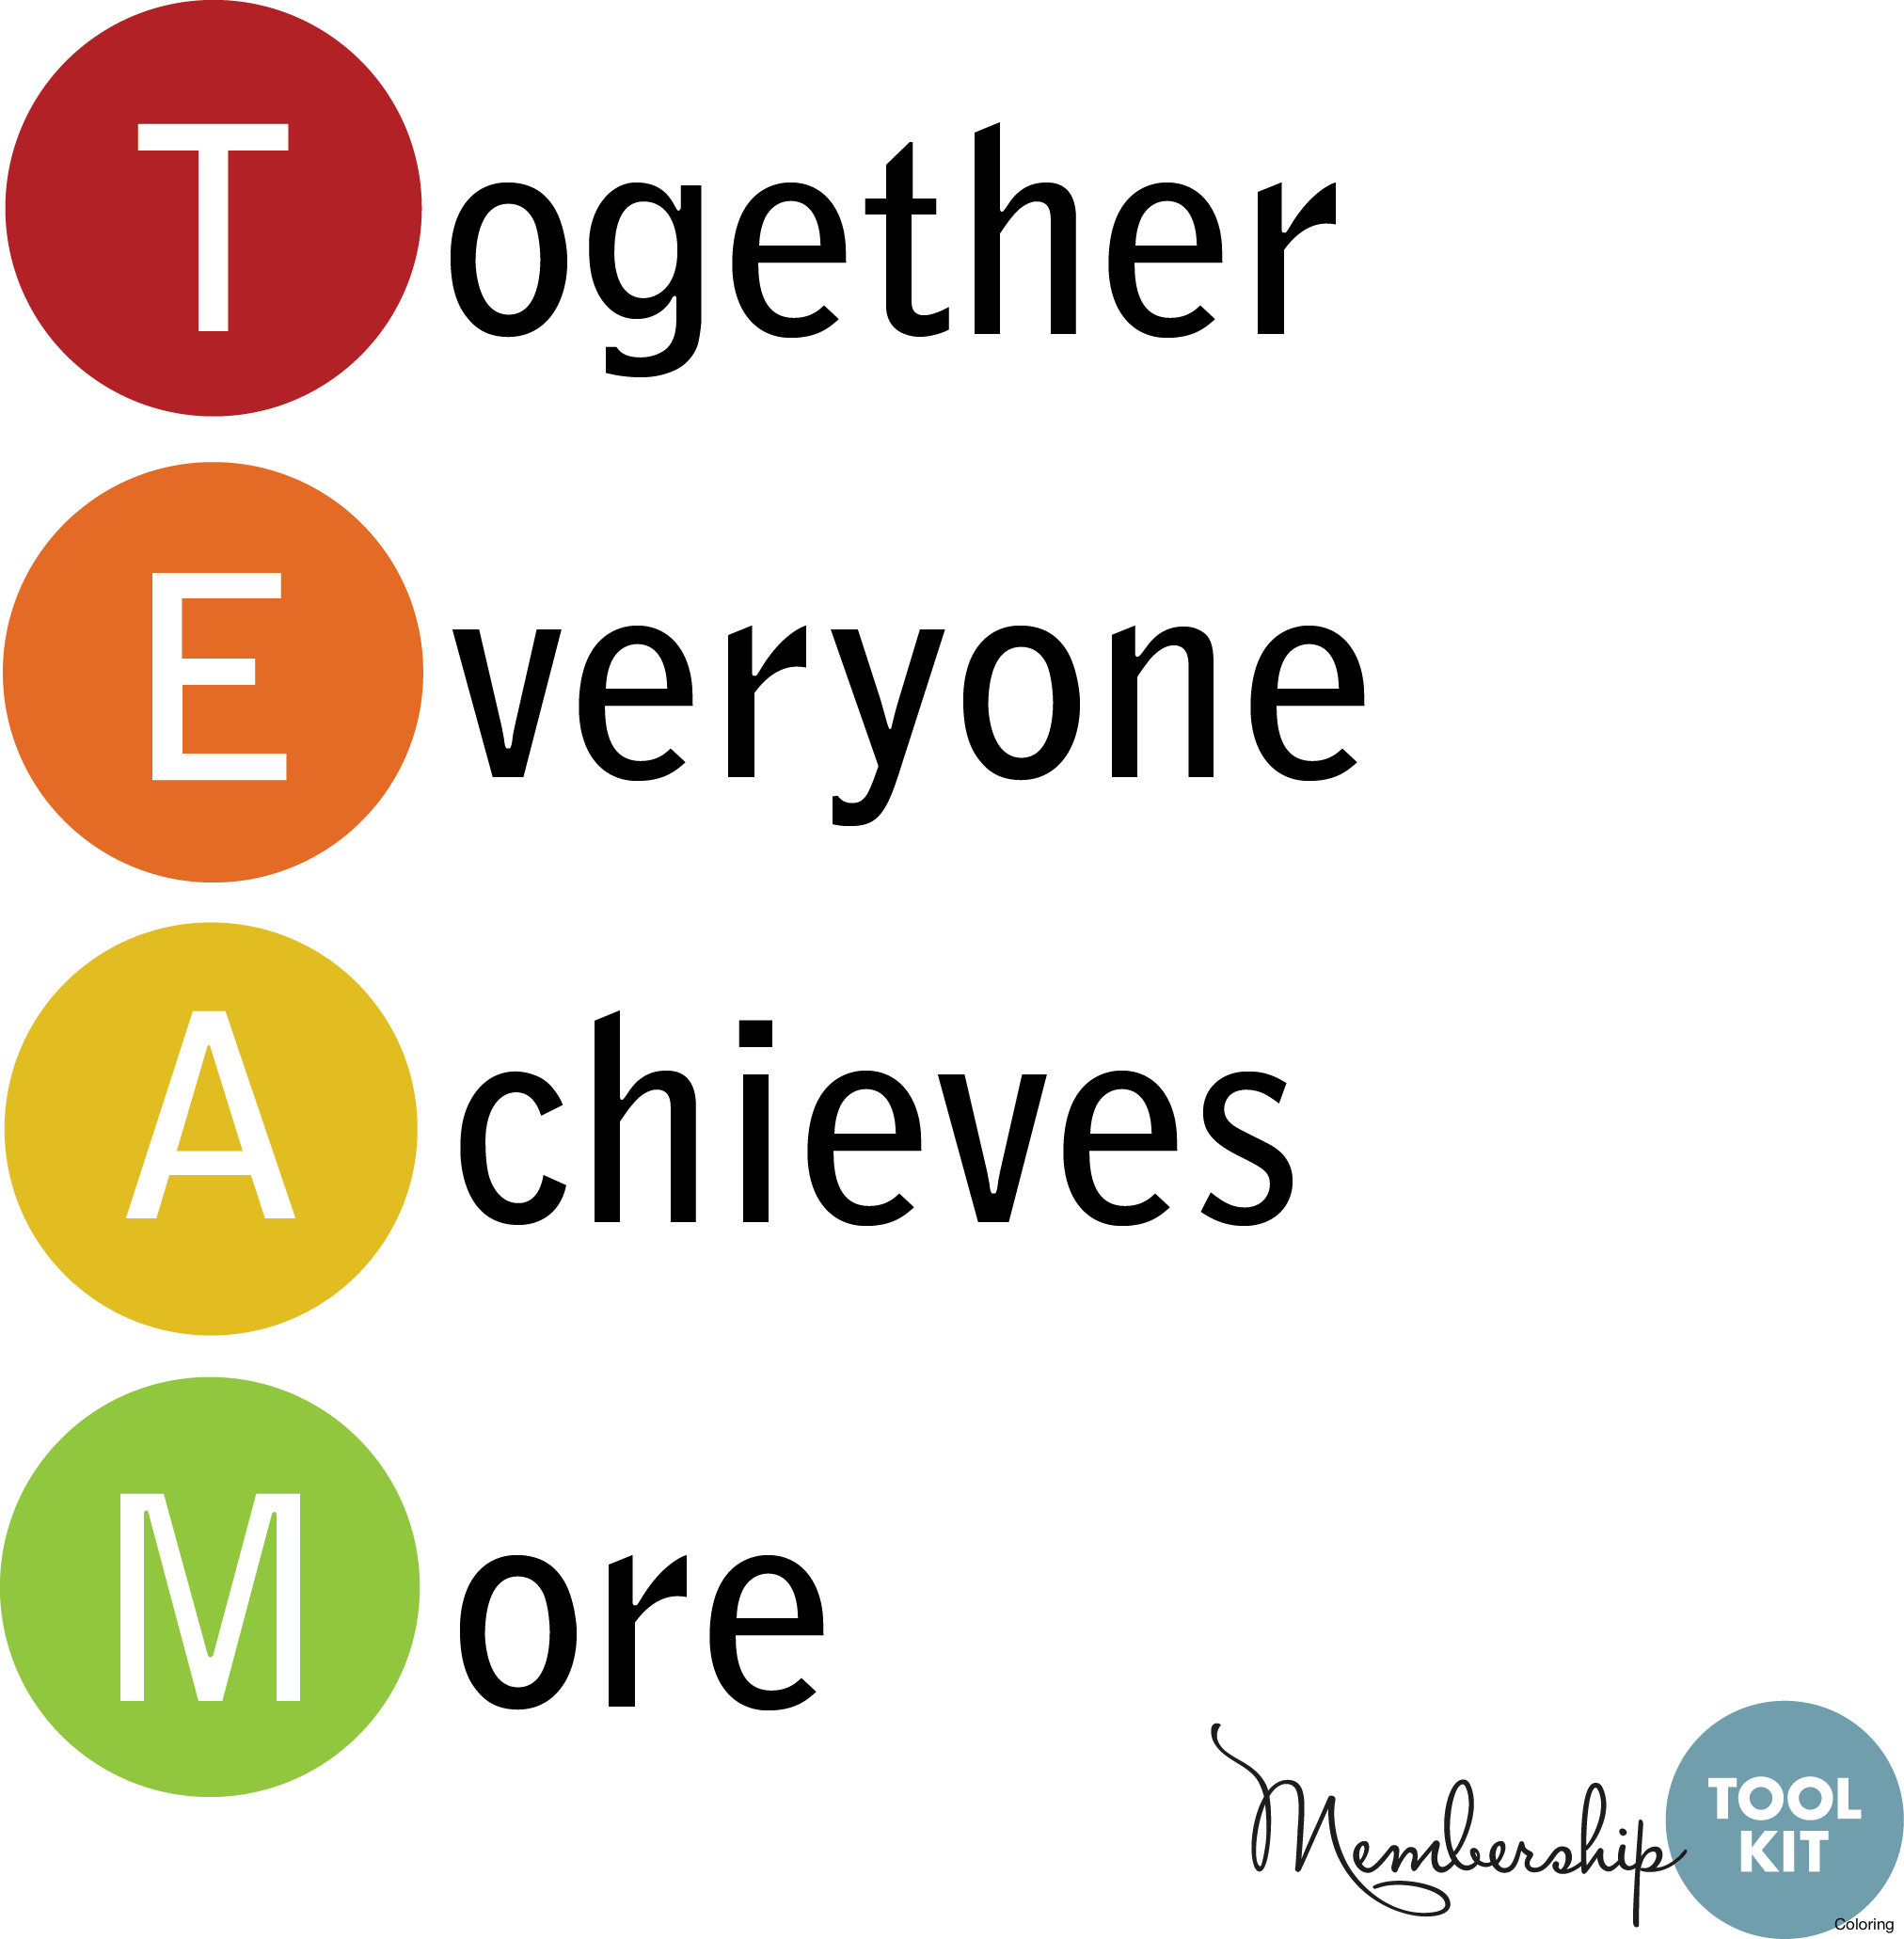 Working clipart teamwork. Download wallpaper together full